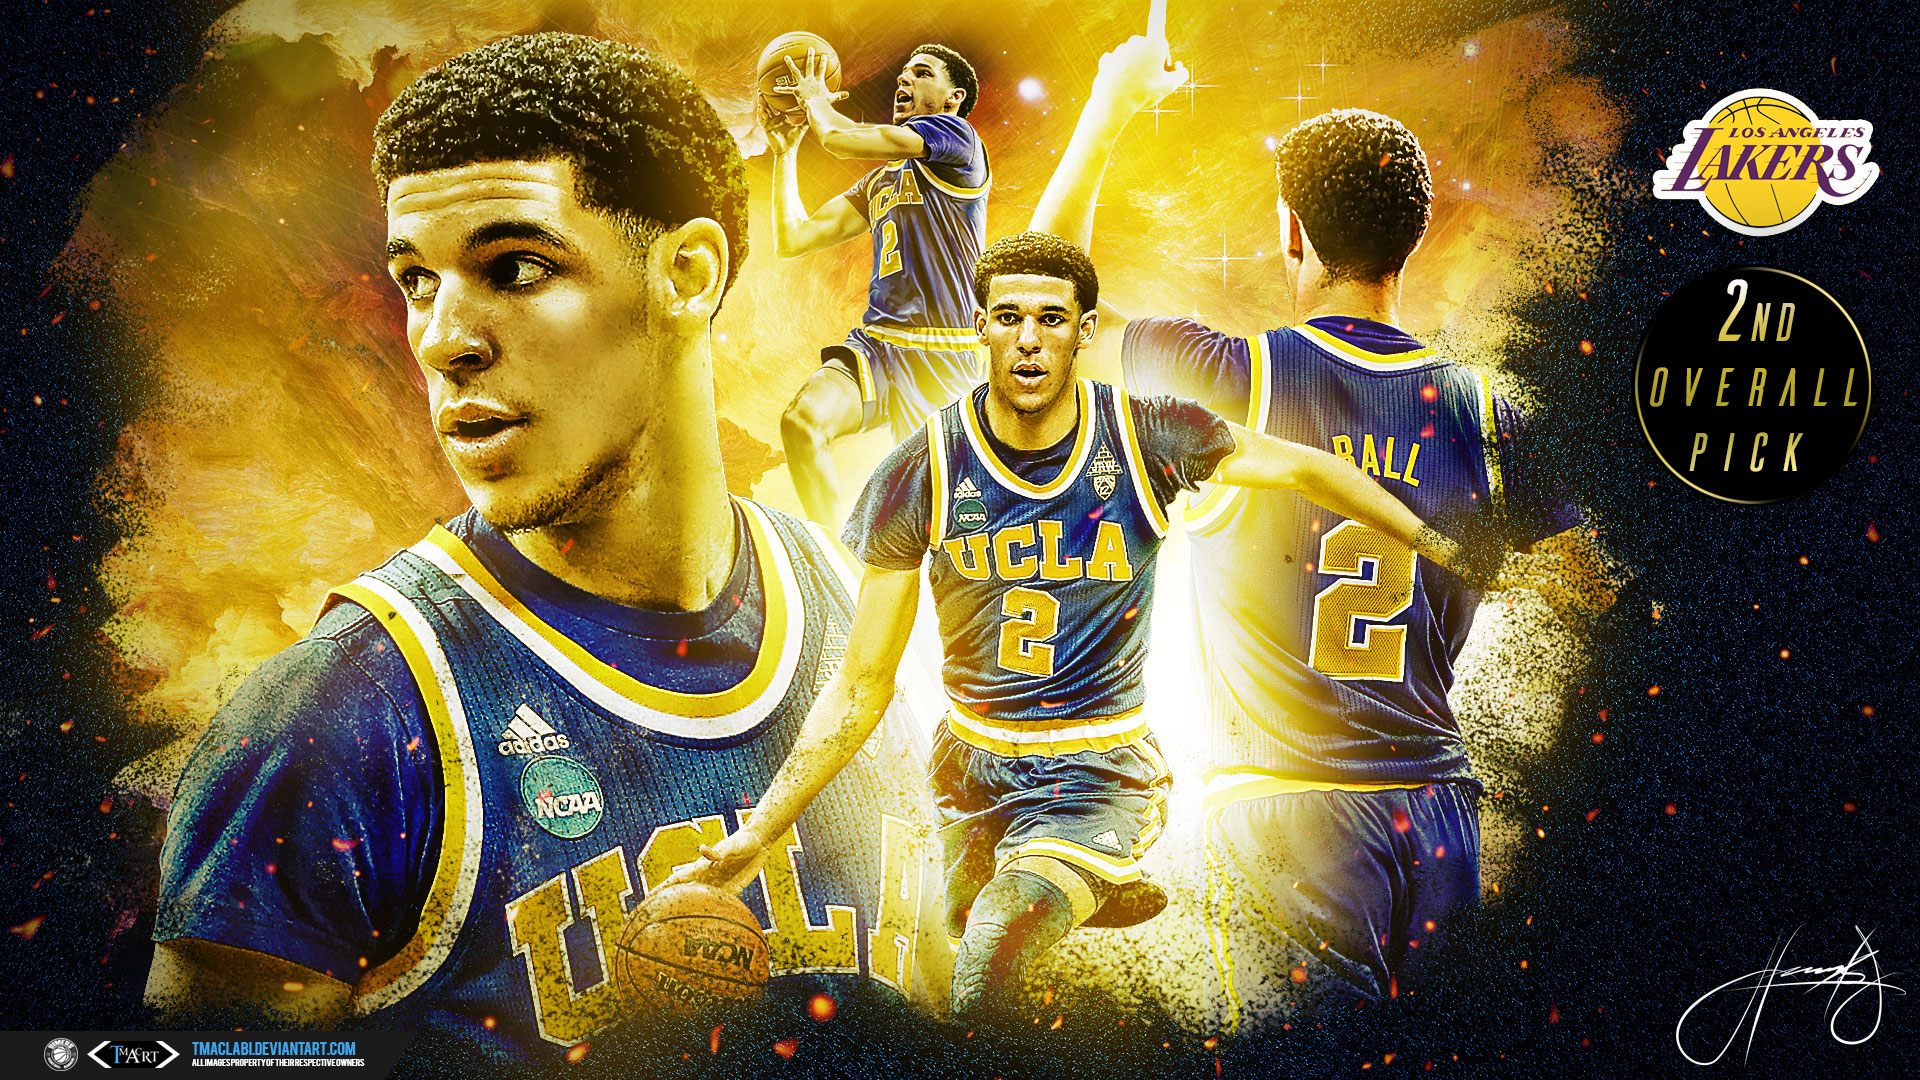 Los Angeles Lakers Wallpapers Basketball Wallpapers at 1920x1080